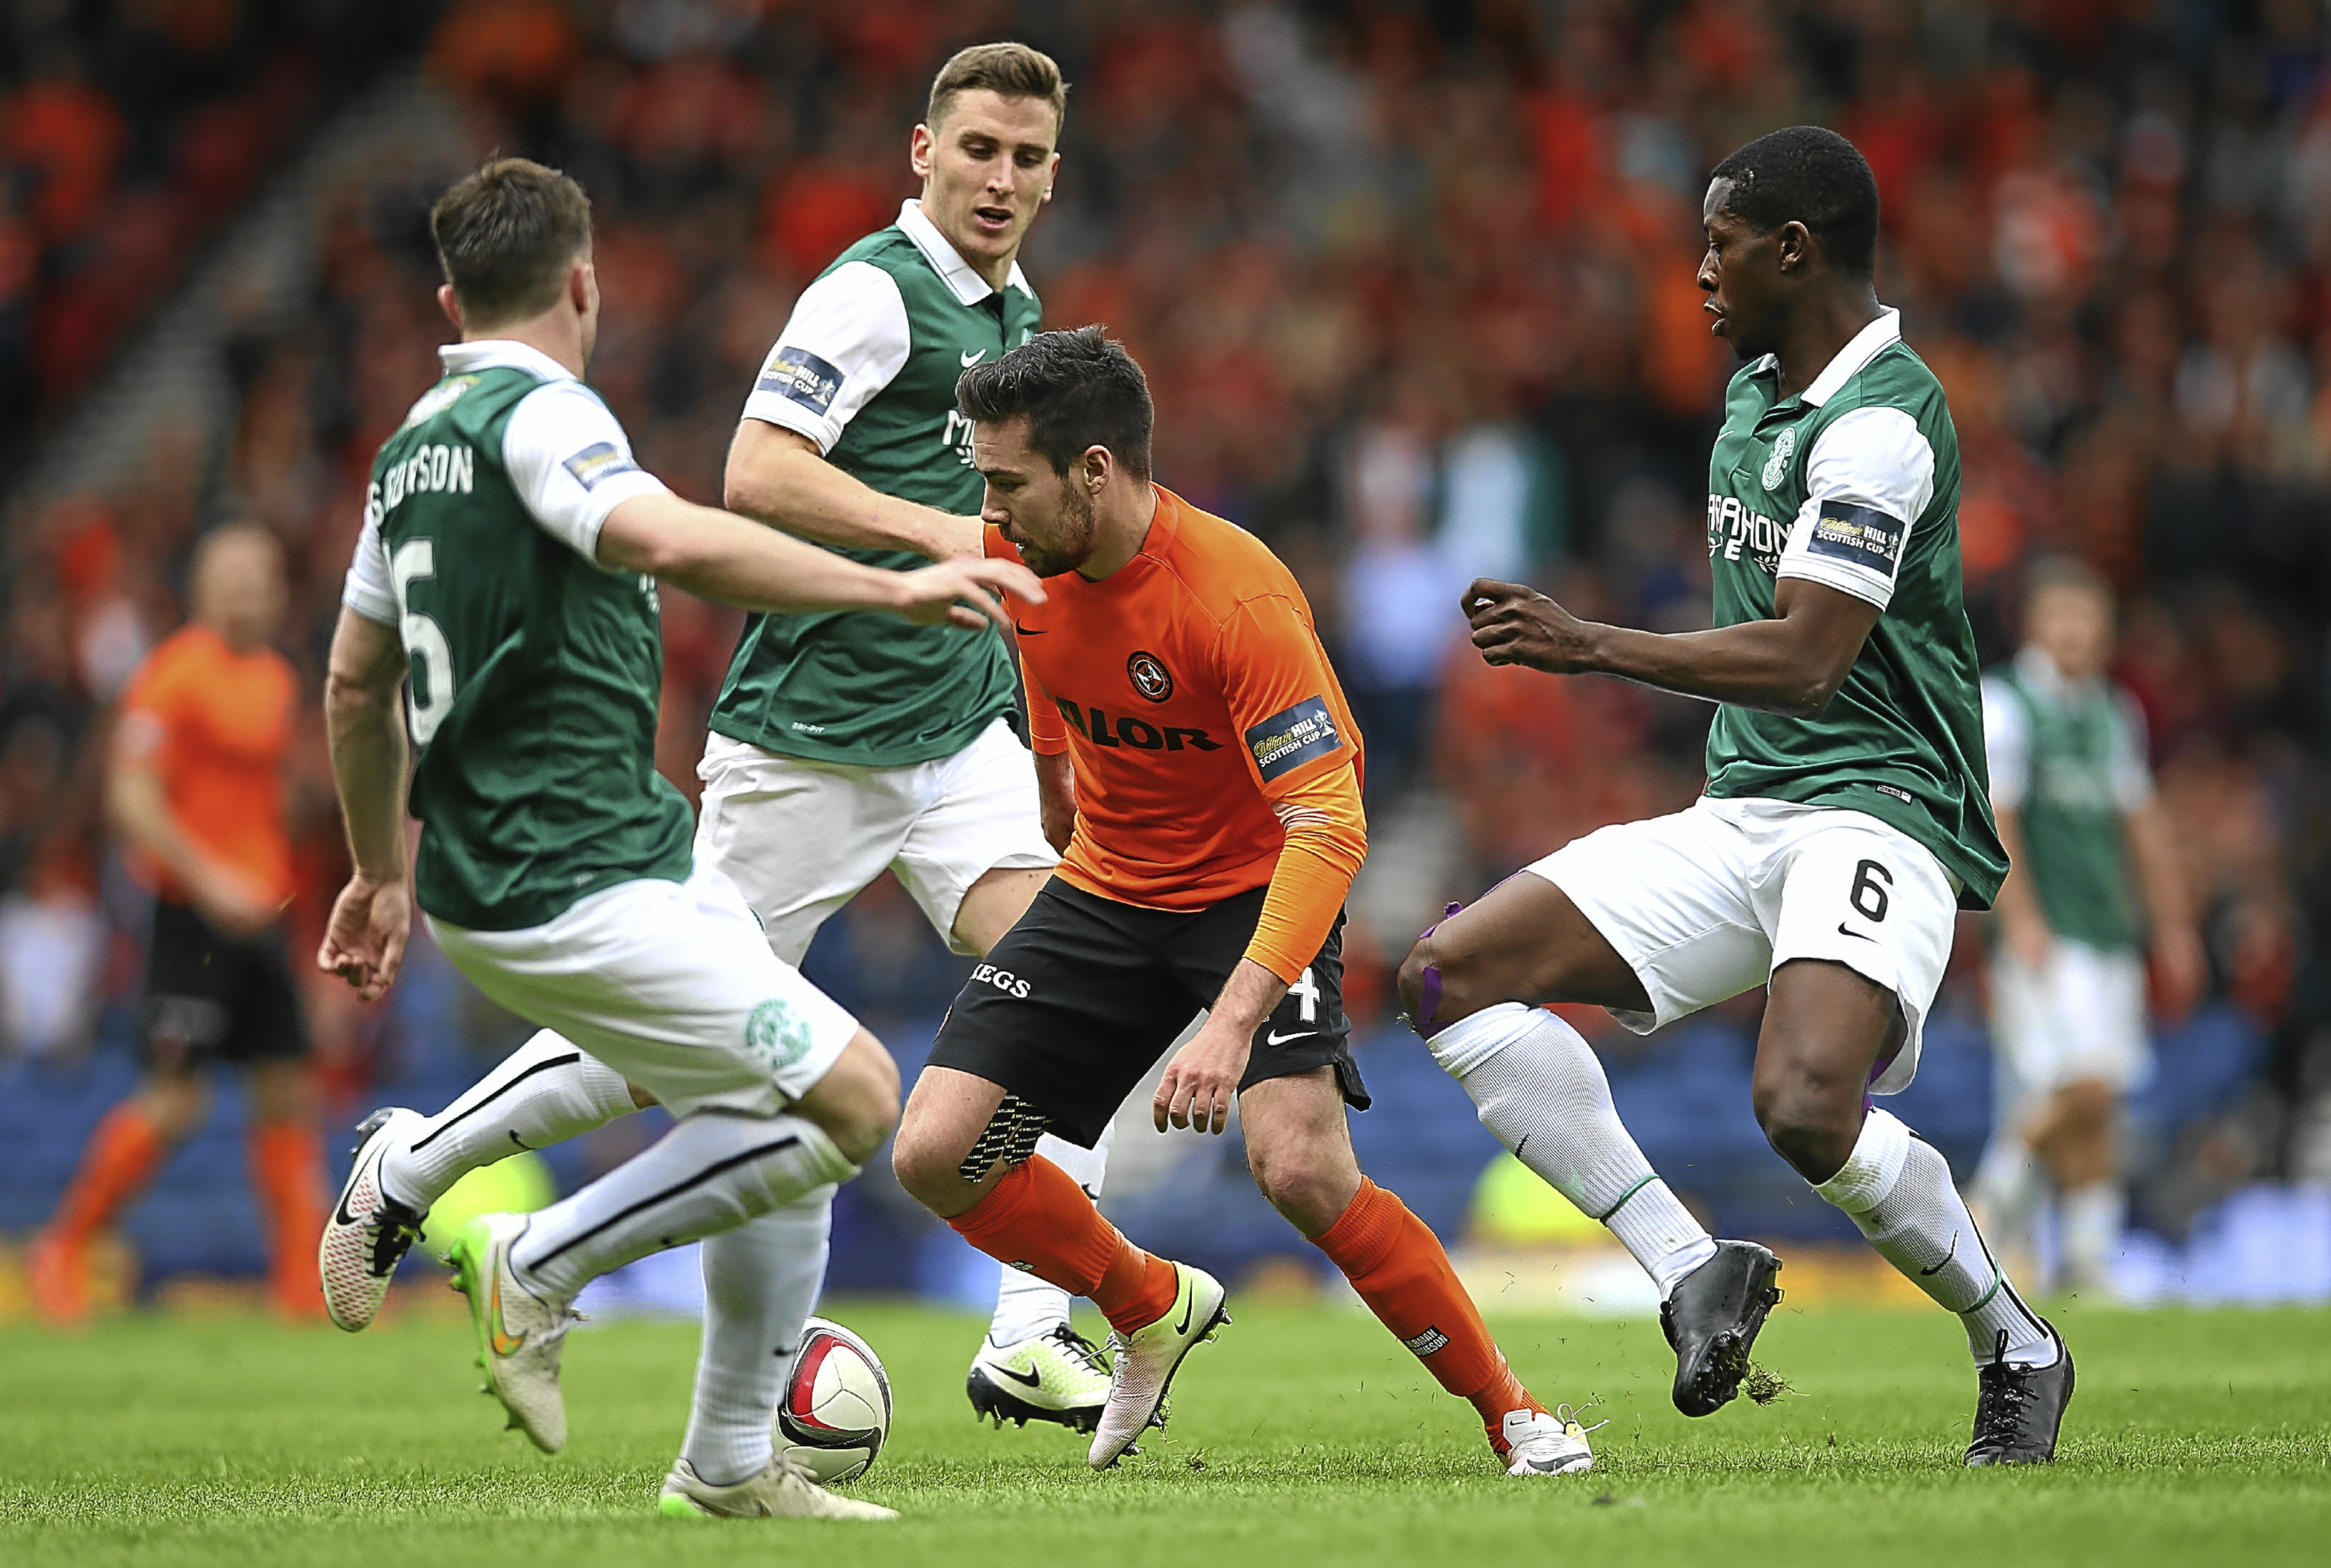 Dundee United attacker Ryan Dow couldn't find a way past a resolute Hibs side in last season's Scottish Cup semi-final, which the men from Leith eventually went on to win in the final against Rangers.